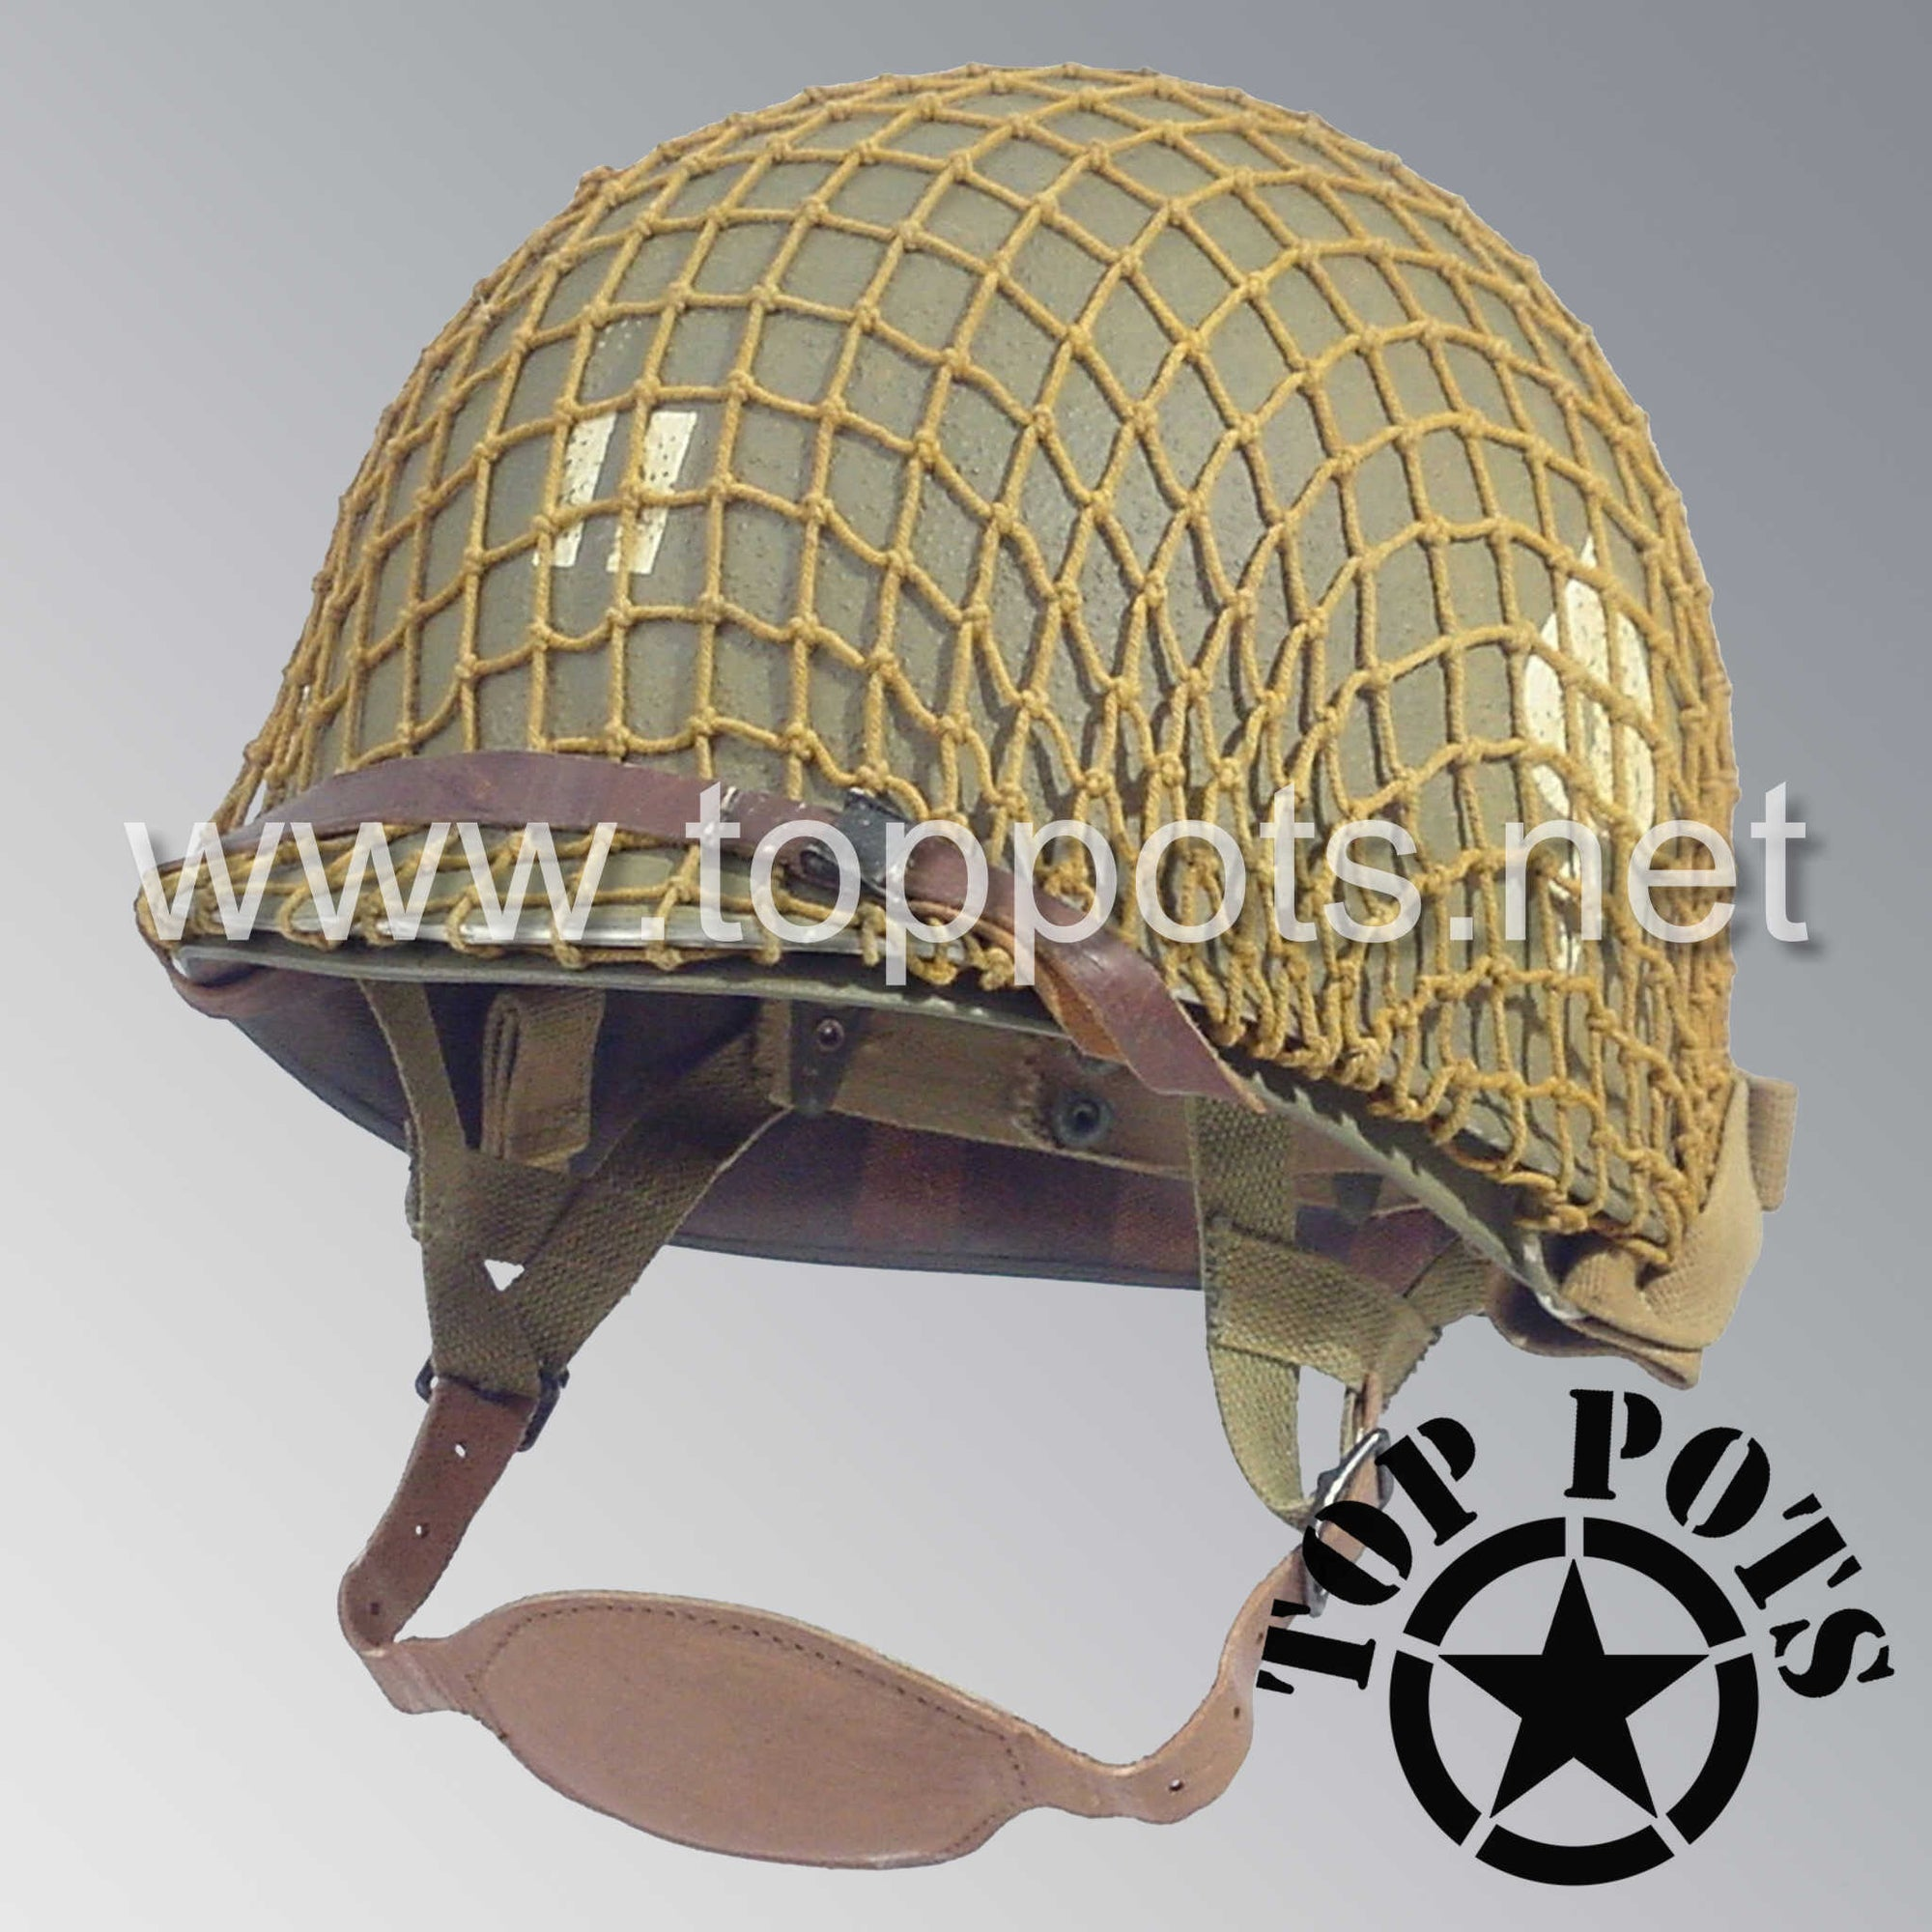 Image 1 of WWII US Army Aged Original M2 Paratrooper Airborne Helmet D Bale Shell and Liner with 506th PIR 2nd Battalion Officer Captain Rank Emblem with Net